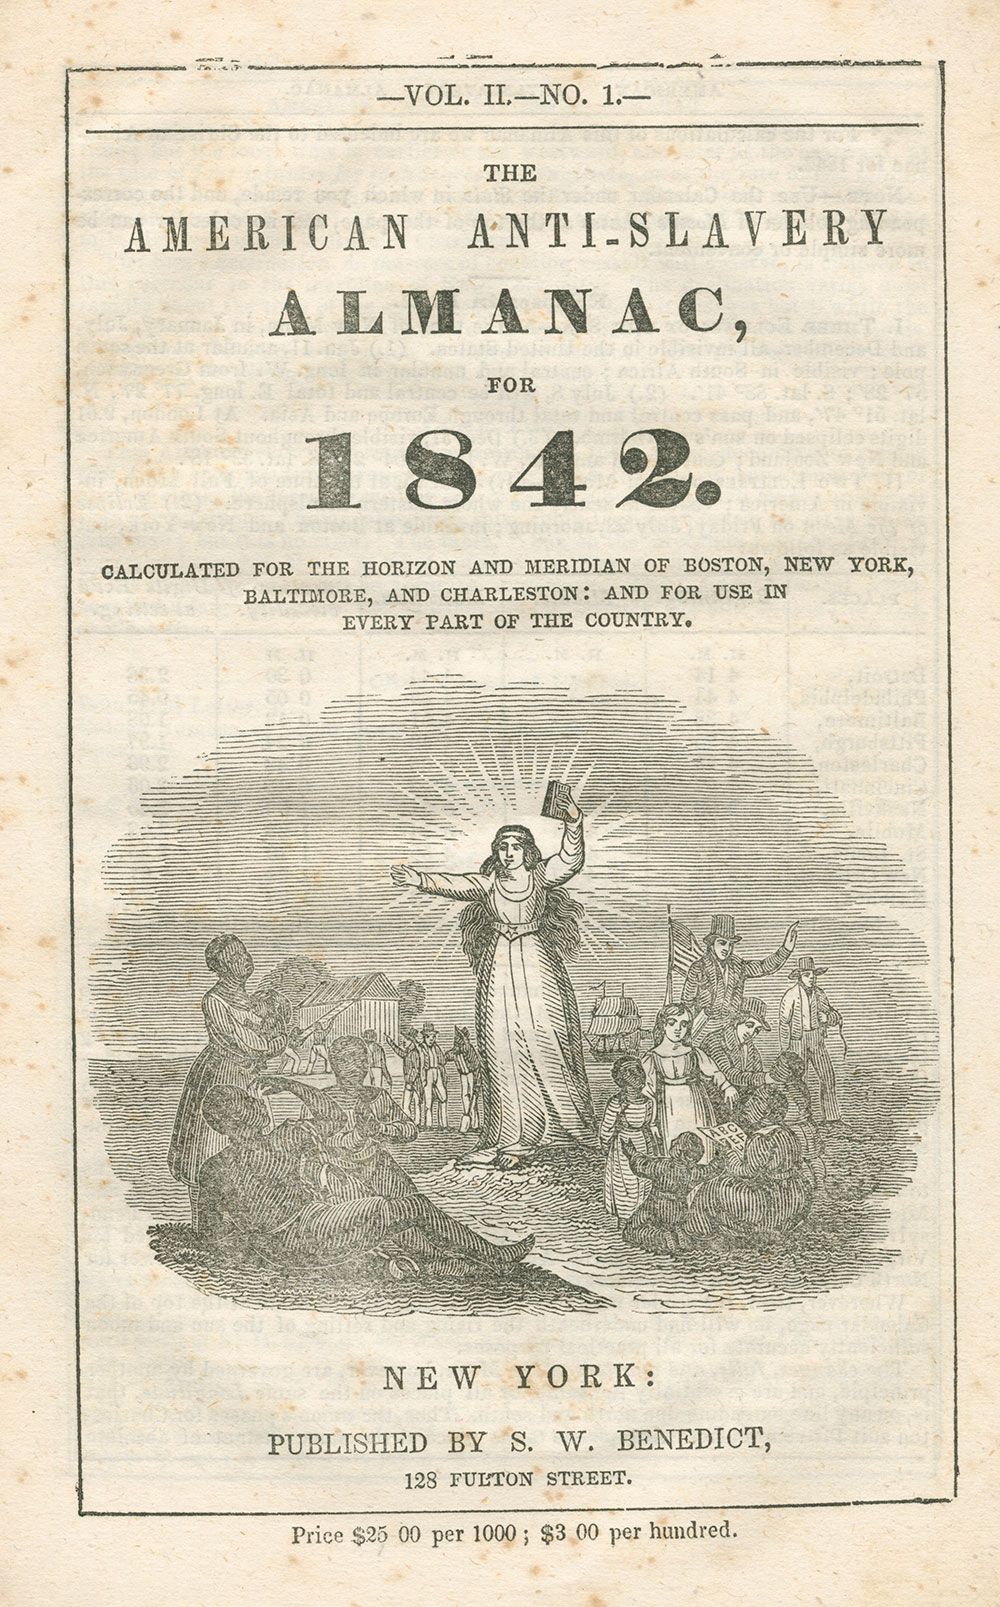 Cover of The American Anti-Slavery Almanac for 1842. Smithsonian National Museum of African American History and Culture.